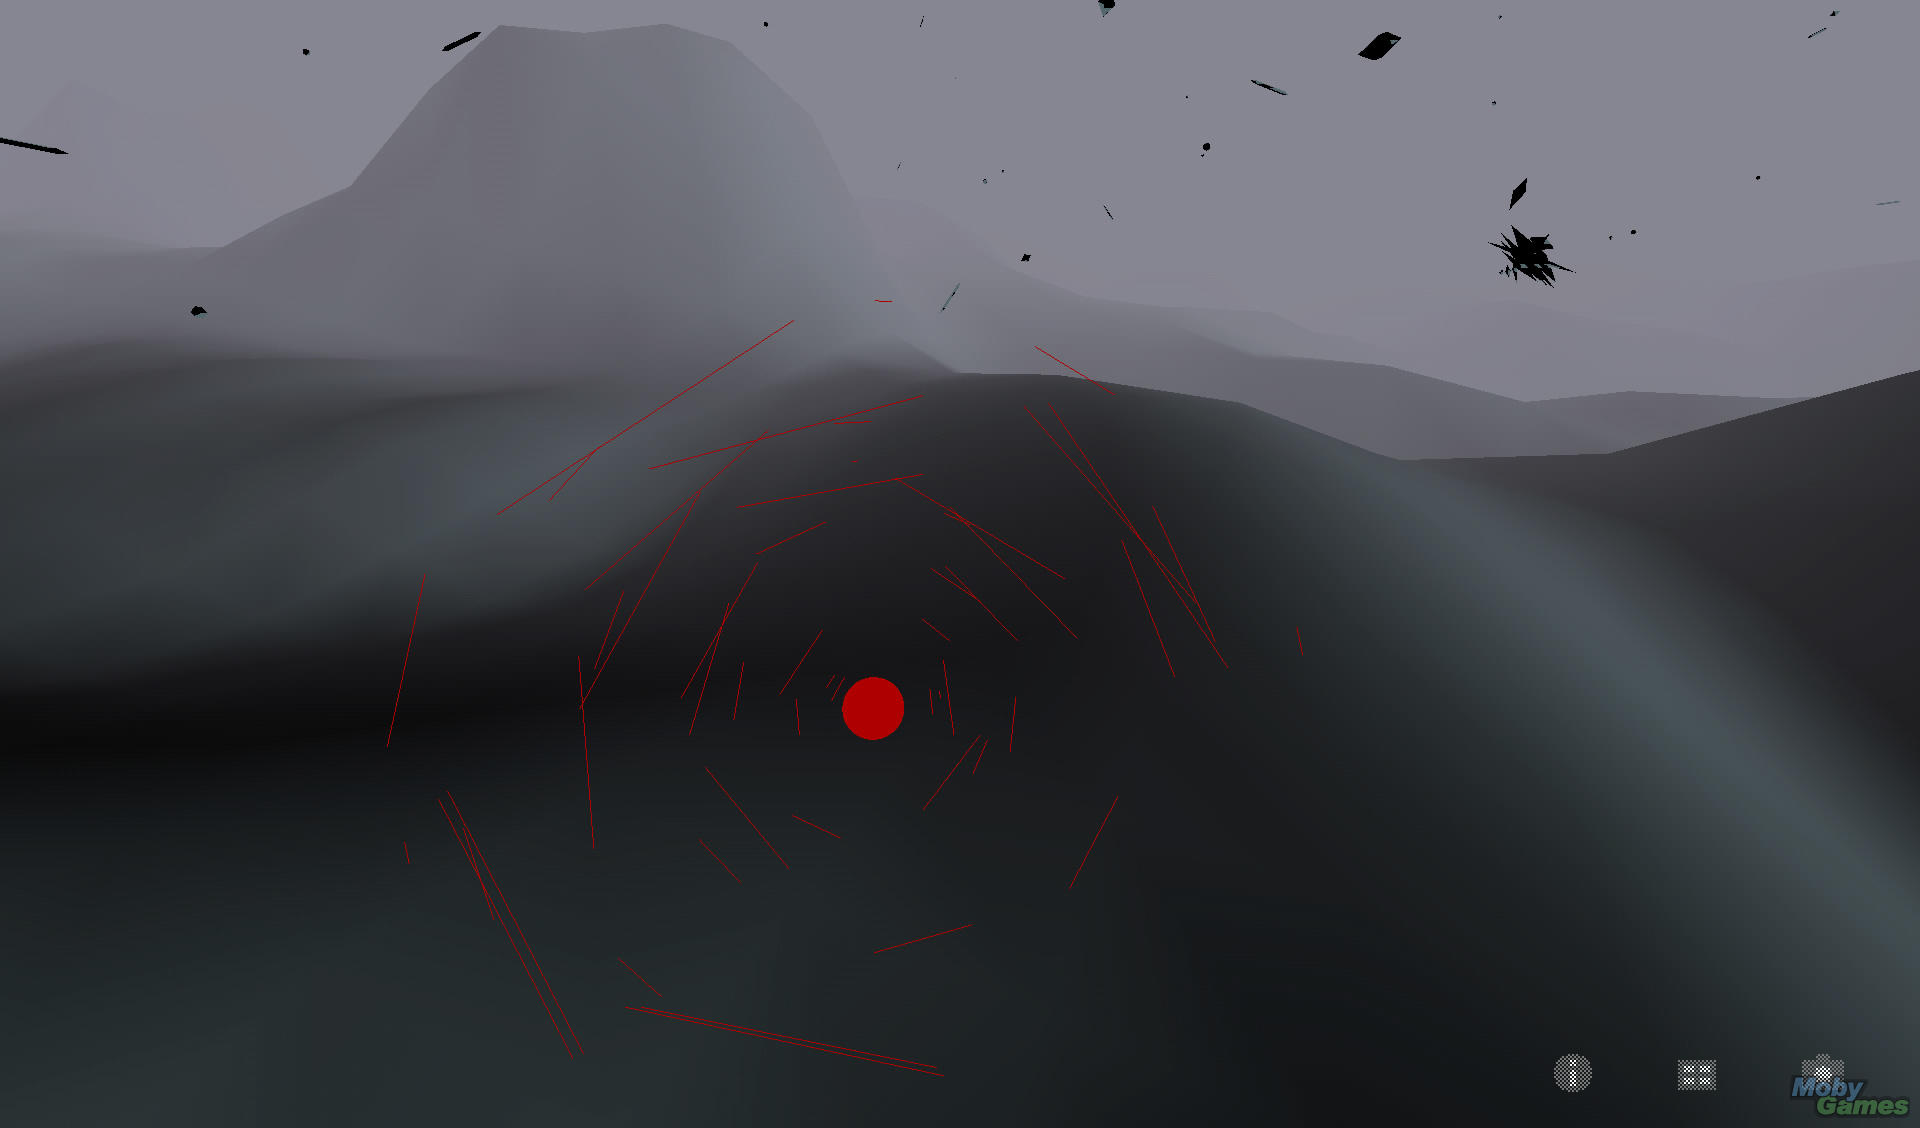 radiohead-polyfauna-android-screenshot-follow-the-red-dot-to-move-on